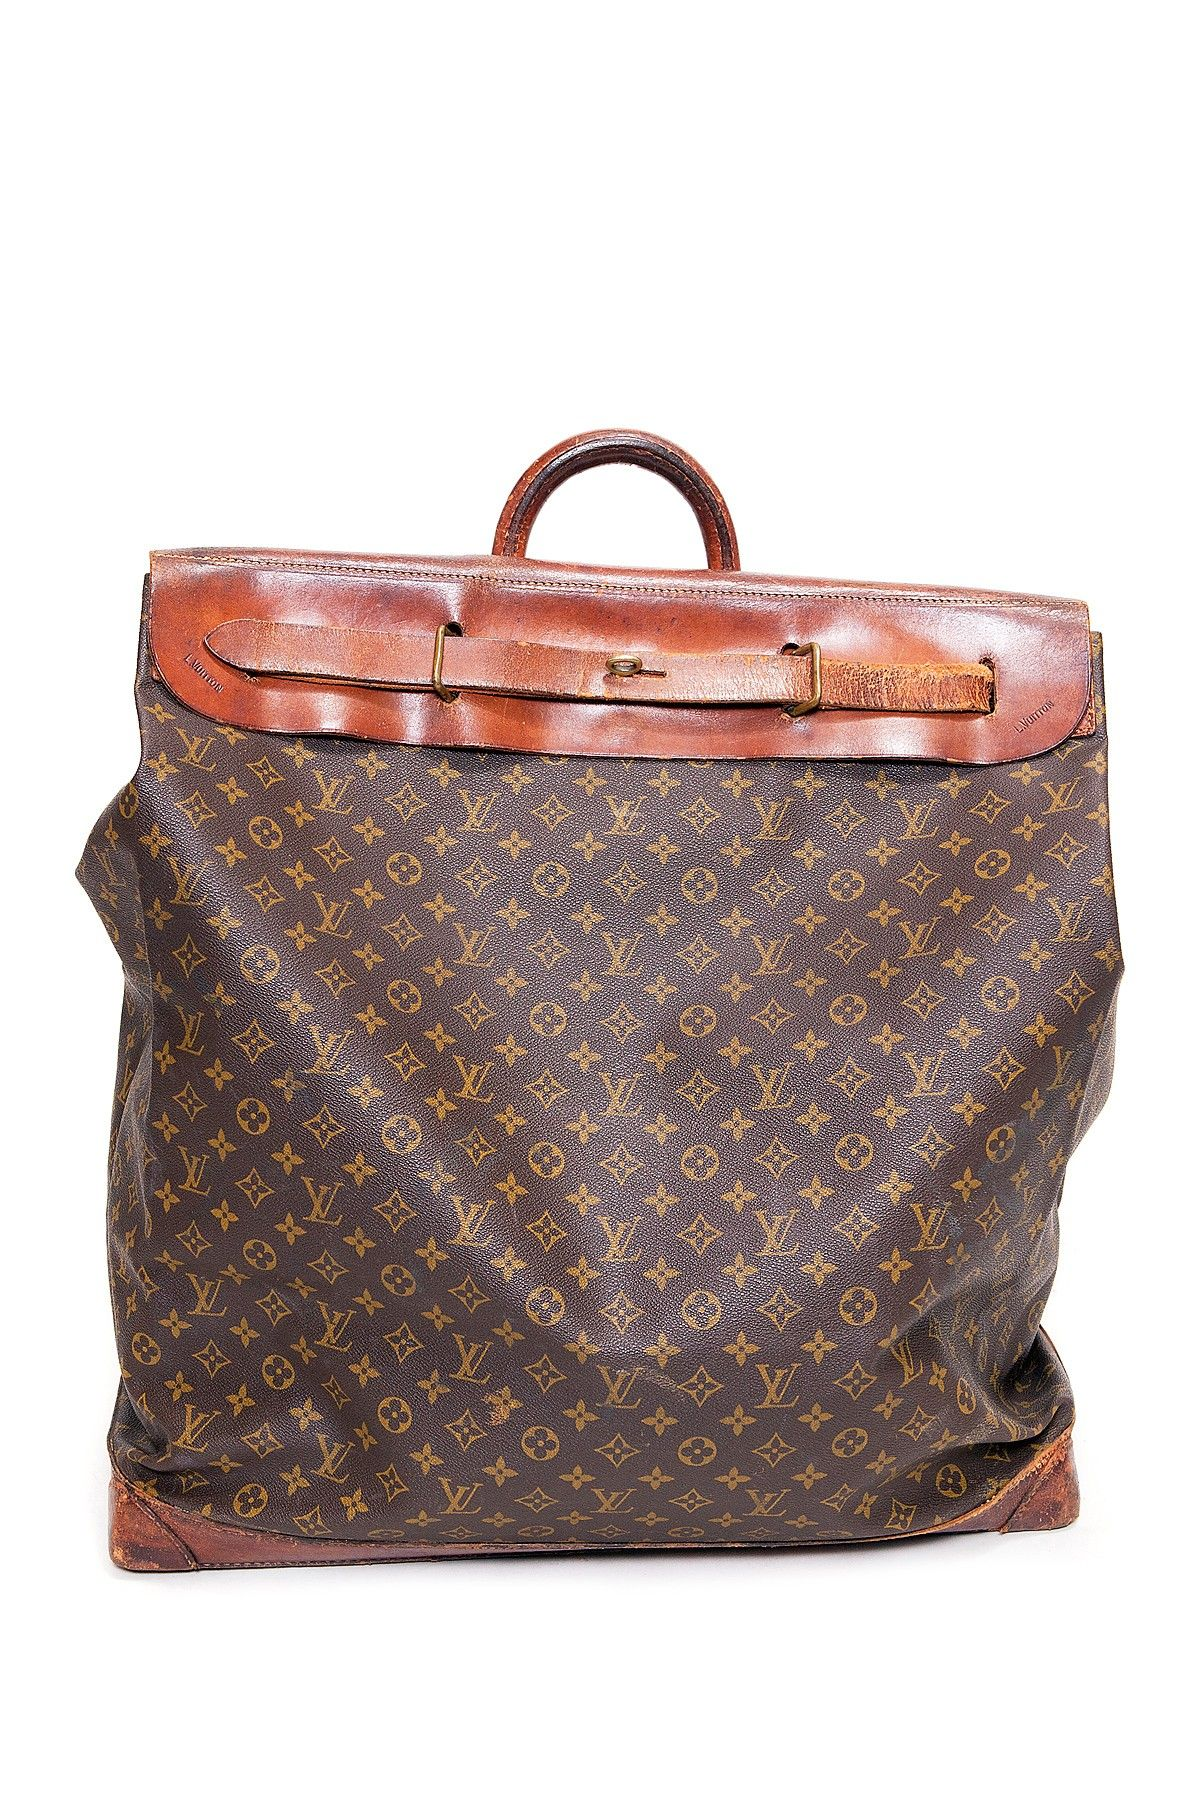 Vintage Louis Vuitton Monogram Print Steamer Bag  aad88a157d90b